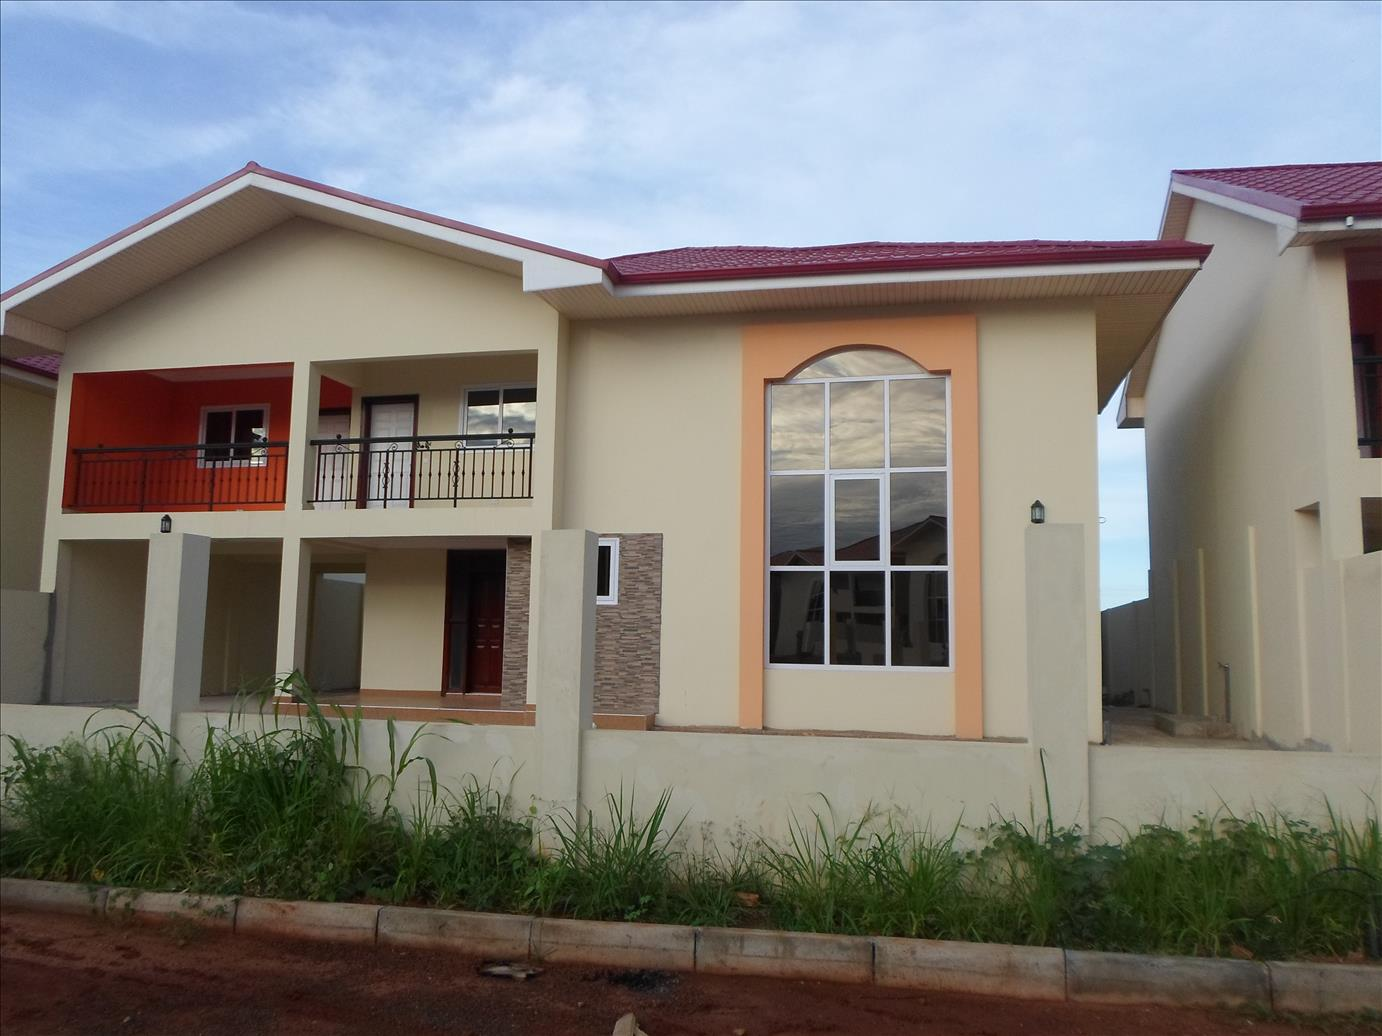 4 Bedroom House For Sale Lashibi Sellrent Ghana